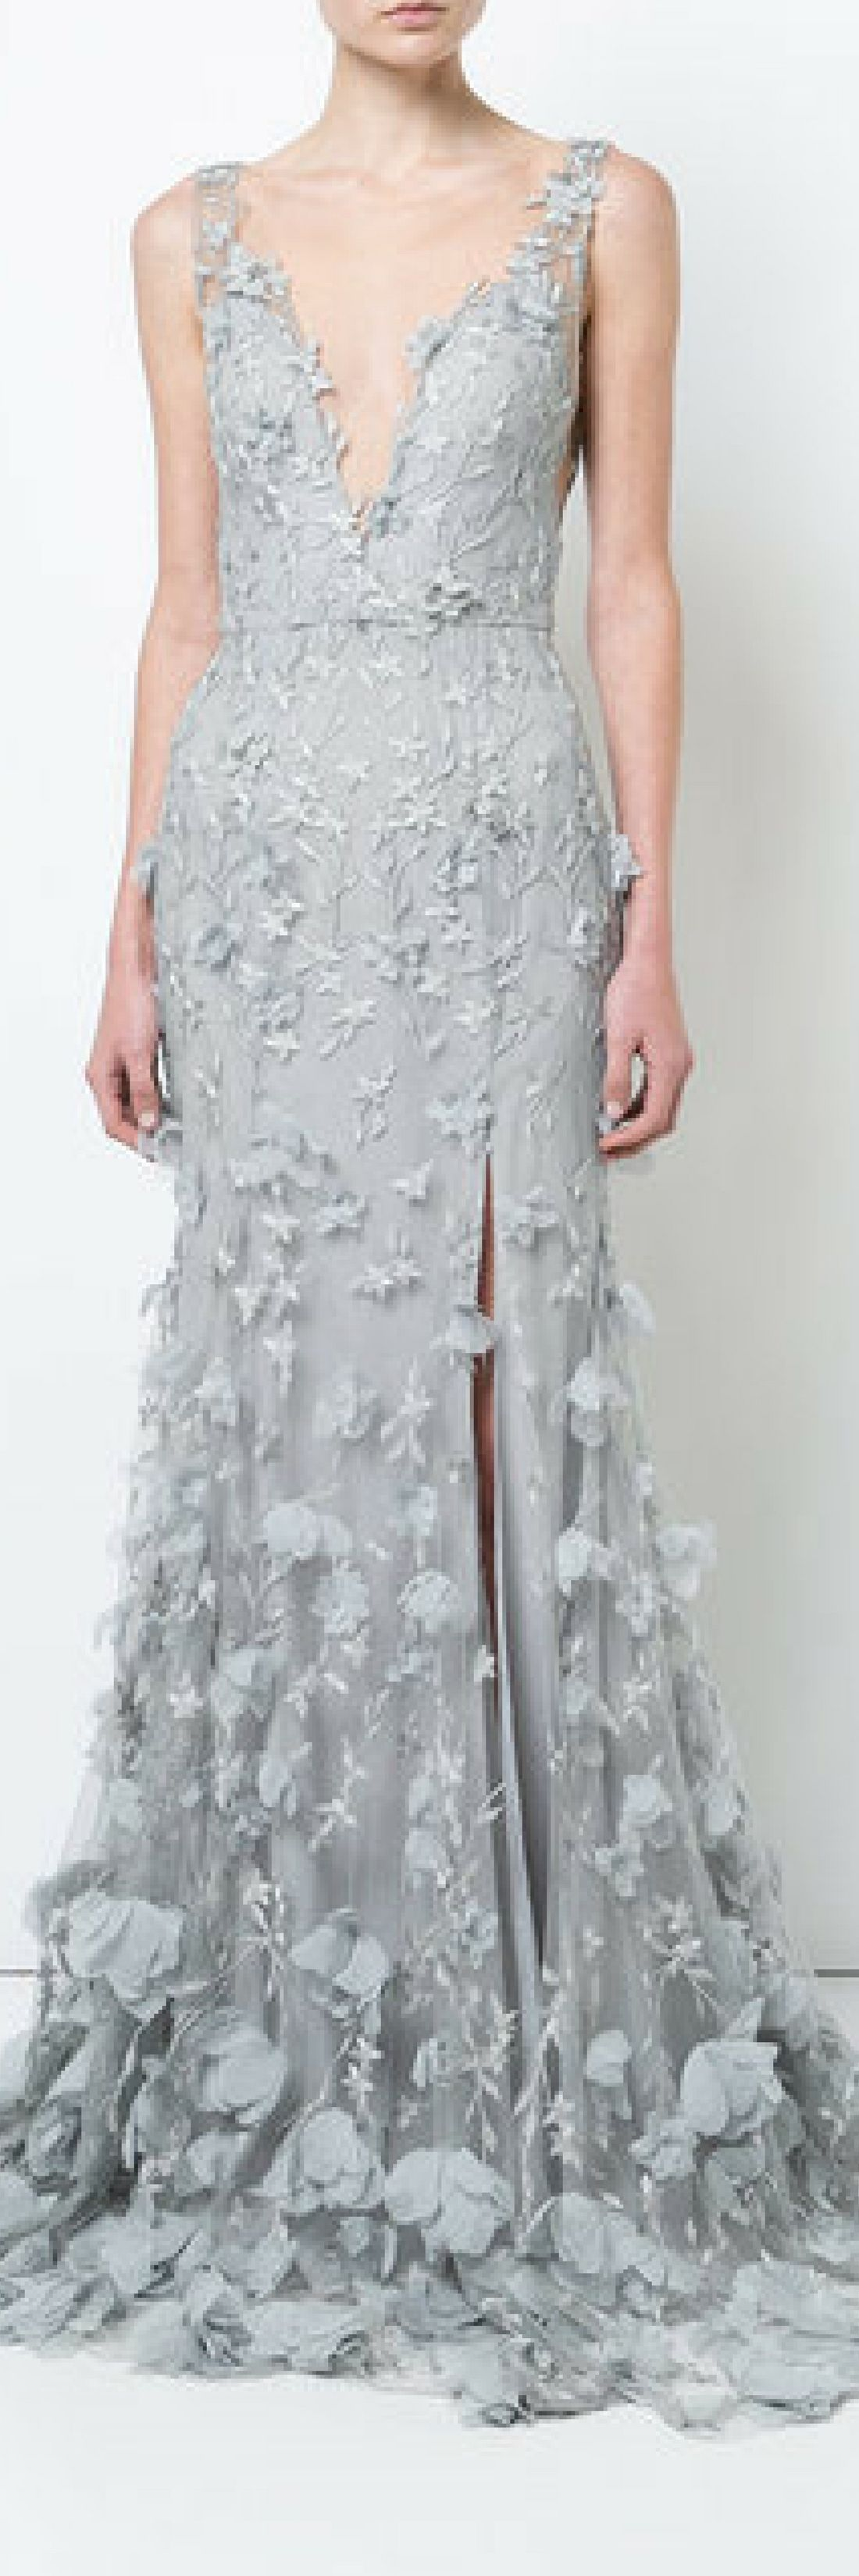 Summer dresses to wear to a wedding  Marchesa Notte D floral plunge gown wedding ideas wedding dresses